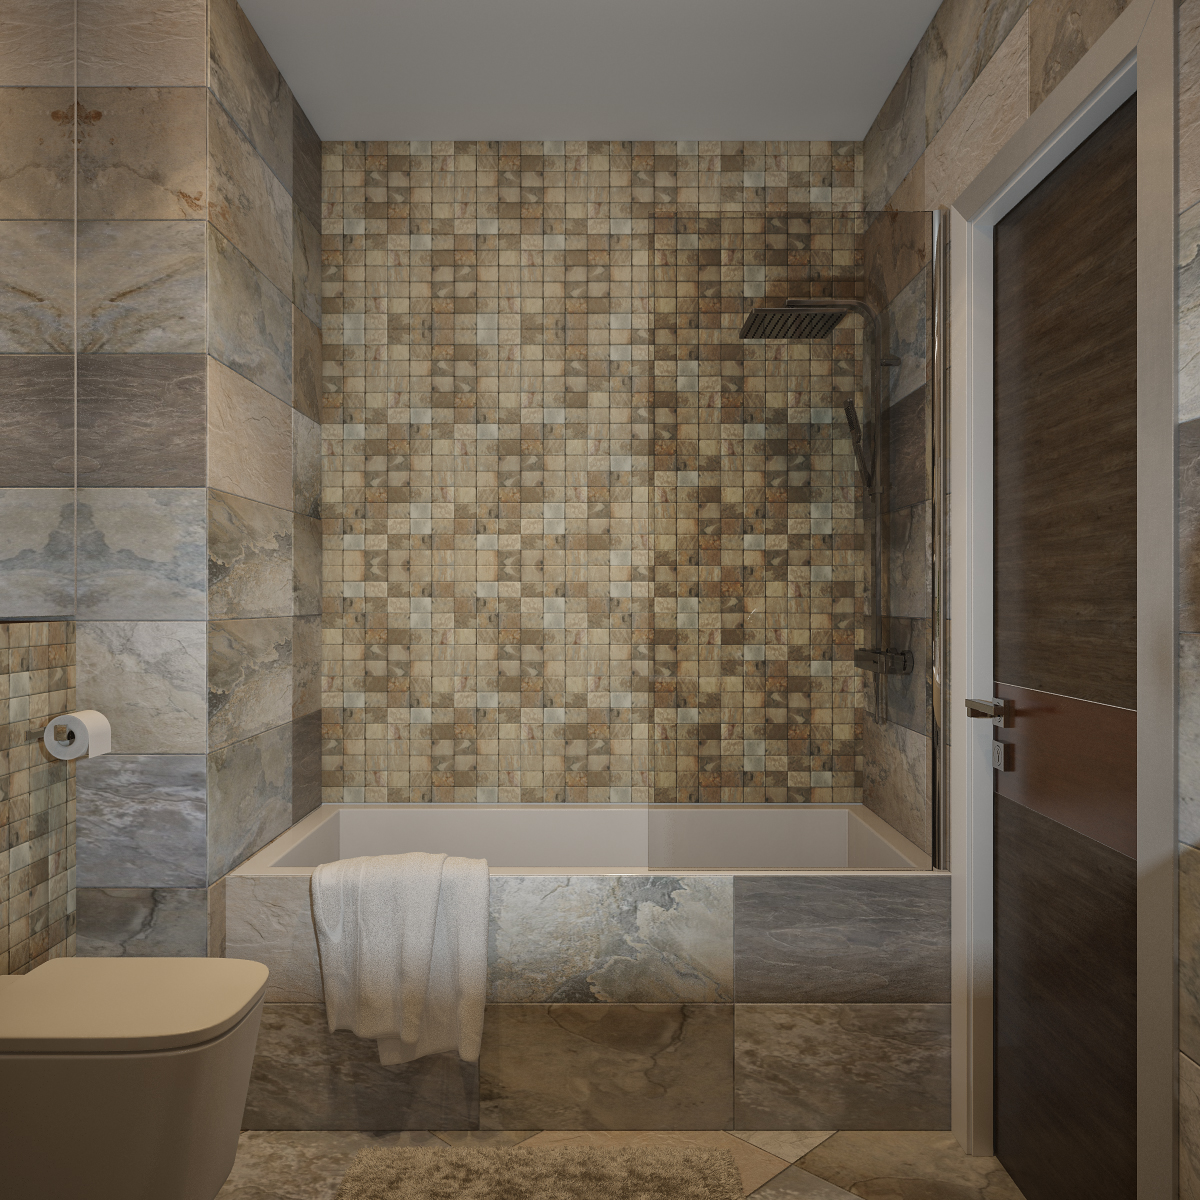 Beautify your bathroom with mosaics for Mosaic tile designs for bathrooms